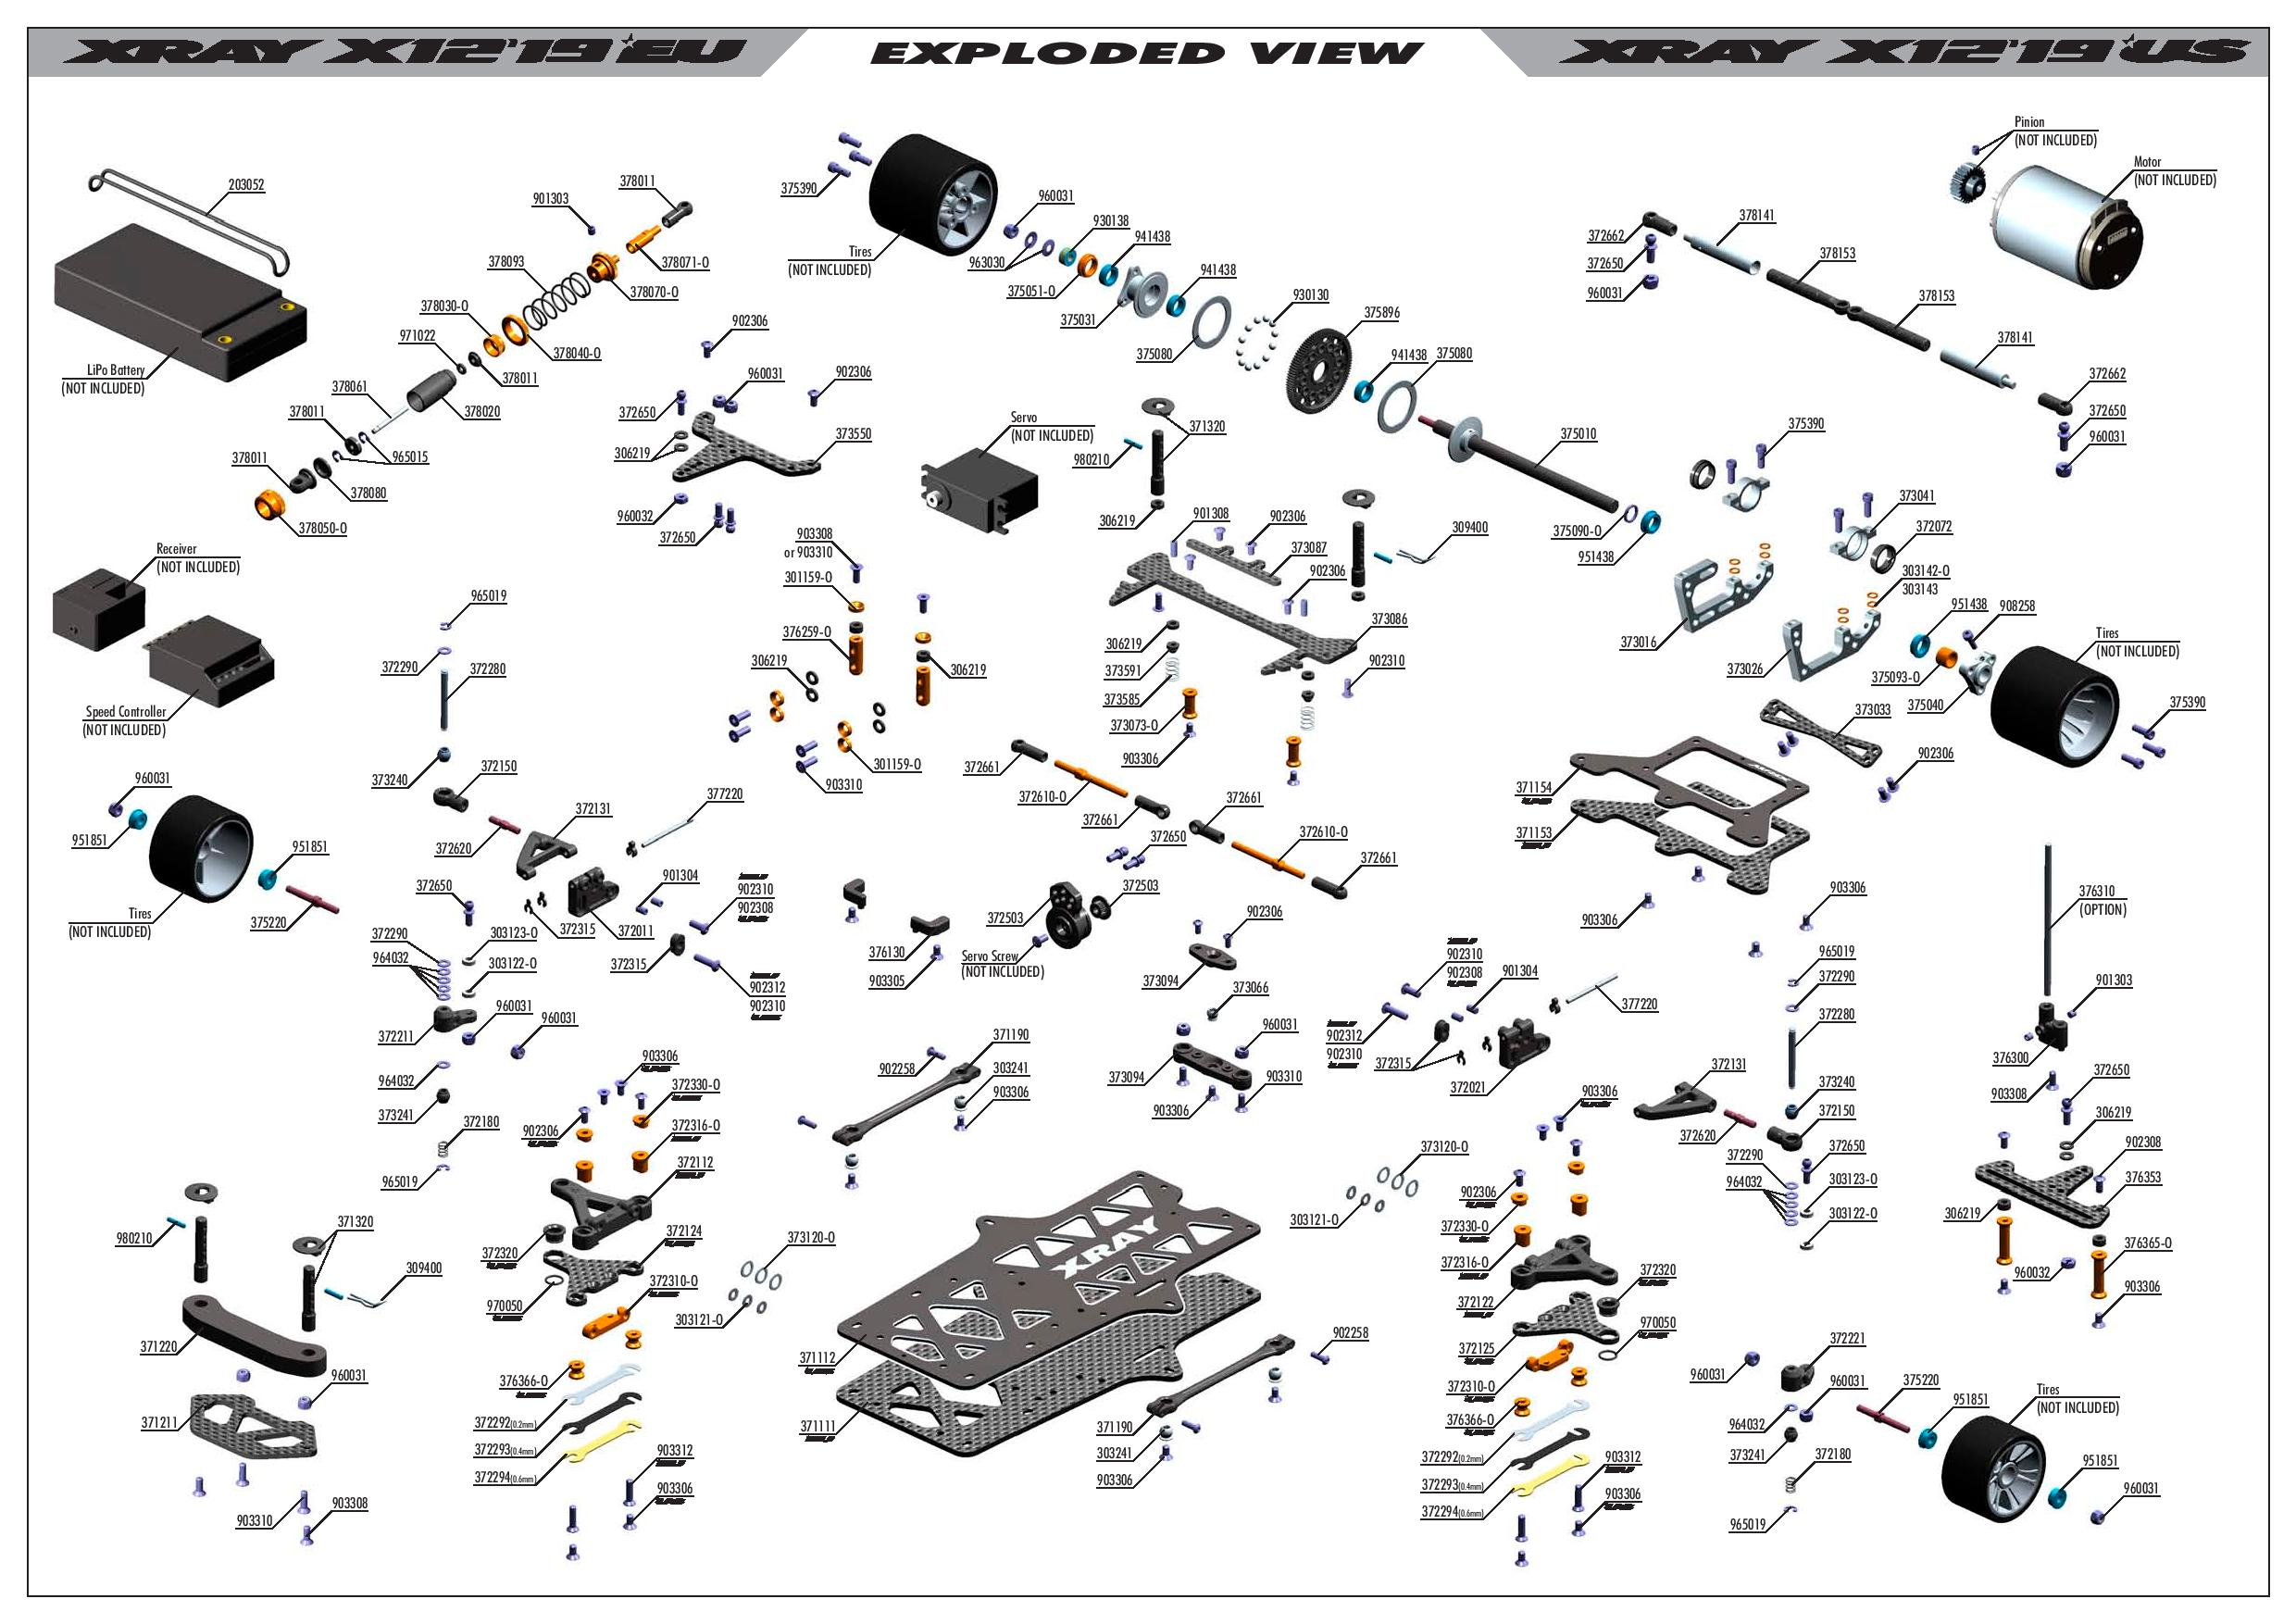 x12_2019_exploded_view_page_001